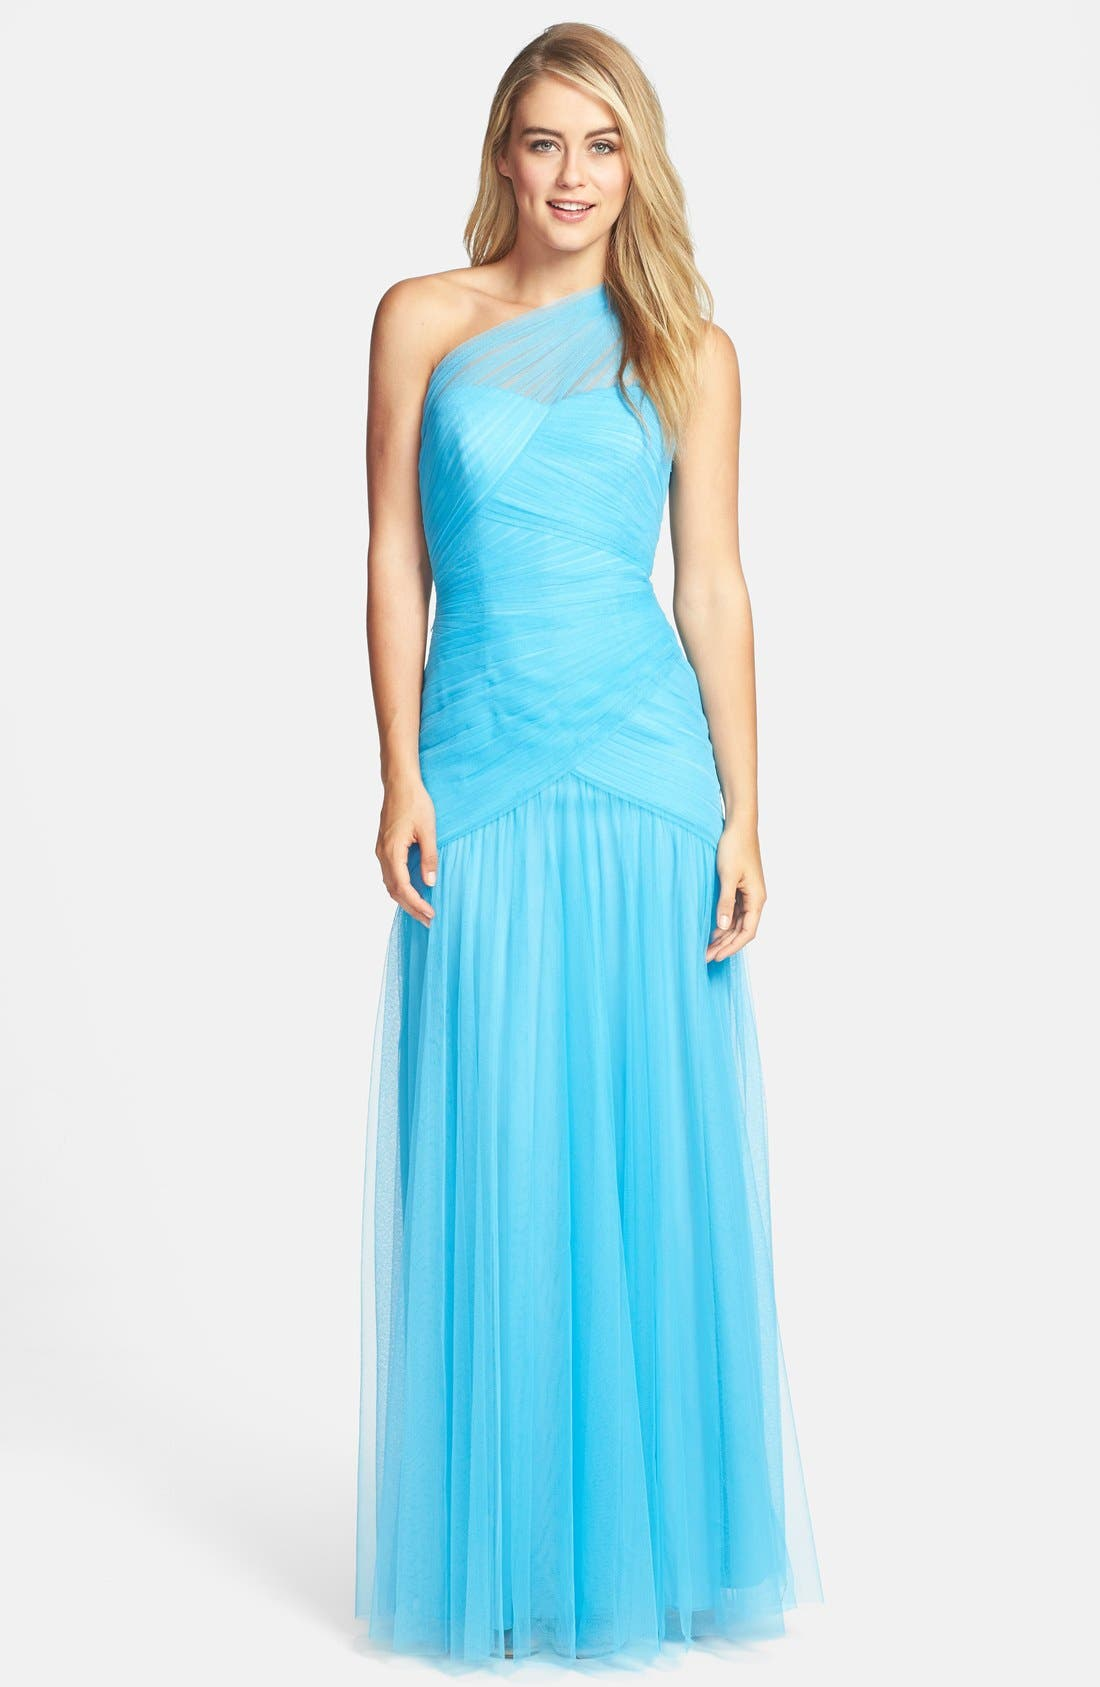 Main Image - ML Monique Lhuillier Bridesmaids Shirred One-Shoulder Tulle Gown (Nordstrom Exclusive)